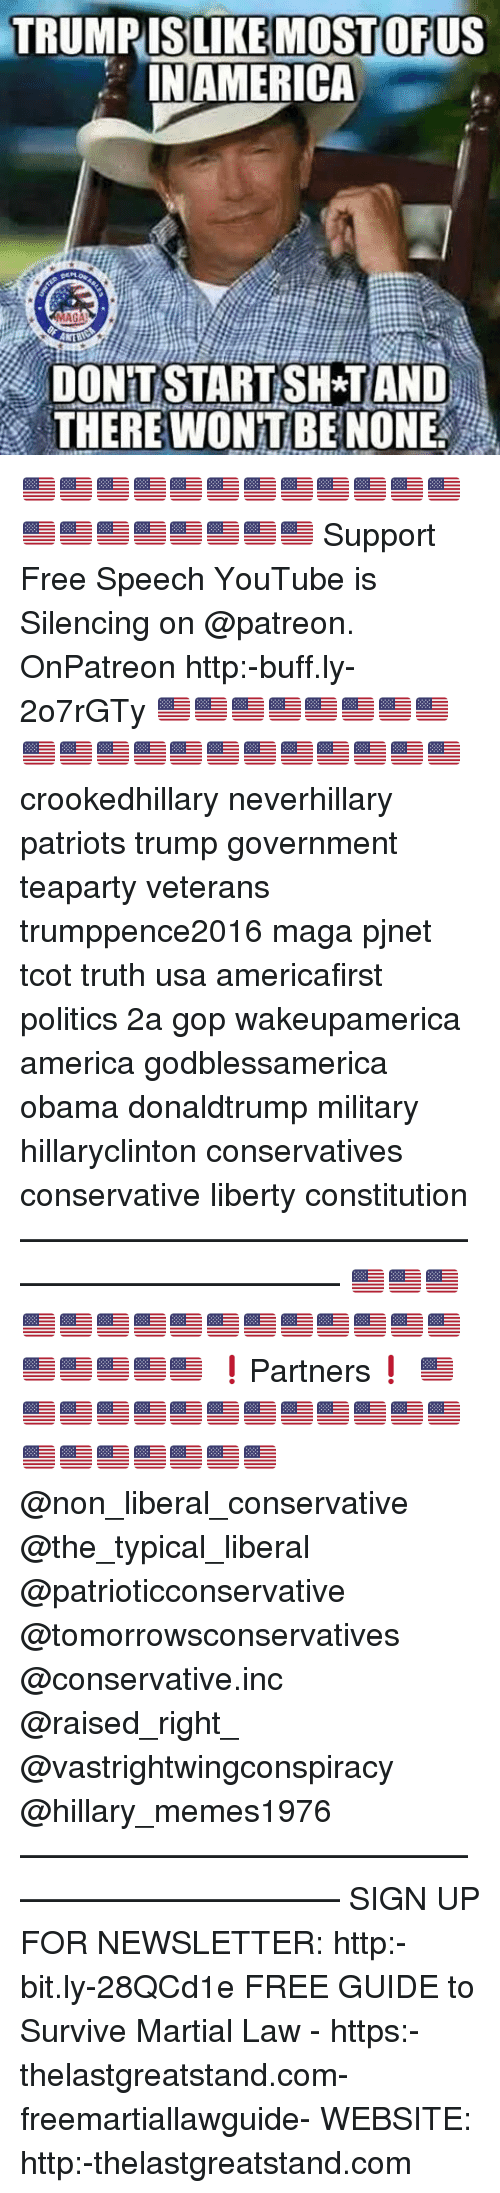 Shatted: TRUMPISLIKE MOSTOFUS  IN AMERICA  DONT START SHAT AND  THERE WONTBE NONE 🇺🇸🇺🇸🇺🇸🇺🇸🇺🇸🇺🇸🇺🇸🇺🇸🇺🇸🇺🇸🇺🇸🇺🇸🇺🇸🇺🇸🇺🇸🇺🇸🇺🇸🇺🇸🇺🇸🇺🇸 Support Free Speech YouTube is Silencing on @patreon. OnPatreon http:-buff.ly-2o7rGTy 🇺🇸🇺🇸🇺🇸🇺🇸🇺🇸🇺🇸🇺🇸🇺🇸🇺🇸🇺🇸🇺🇸🇺🇸🇺🇸🇺🇸🇺🇸🇺🇸🇺🇸🇺🇸🇺🇸🇺🇸 crookedhillary neverhillary patriots trump government teaparty veterans trumppence2016 maga pjnet tcot truth usa americafirst politics 2a gop wakeupamerica america godblessamerica obama donaldtrump military hillaryclinton conservatives conservative liberty constitution ———————————————————————— 🇺🇸🇺🇸🇺🇸🇺🇸🇺🇸🇺🇸🇺🇸🇺🇸🇺🇸🇺🇸🇺🇸🇺🇸🇺🇸🇺🇸🇺🇸🇺🇸🇺🇸🇺🇸🇺🇸🇺🇸 ❗️Partners❗️ 🇺🇸🇺🇸🇺🇸🇺🇸🇺🇸🇺🇸🇺🇸🇺🇸🇺🇸🇺🇸🇺🇸🇺🇸🇺🇸🇺🇸🇺🇸🇺🇸🇺🇸🇺🇸🇺🇸🇺🇸 @non_liberal_conservative @the_typical_liberal @patrioticconservative @tomorrowsconservatives @conservative.inc @raised_right_ @vastrightwingconspiracy @hillary_memes1976 ———————————————————————— SIGN UP FOR NEWSLETTER: http:-bit.ly-28QCd1e FREE GUIDE to Survive Martial Law - https:-thelastgreatstand.com-freemartiallawguide- WEBSITE: http:-thelastgreatstand.com